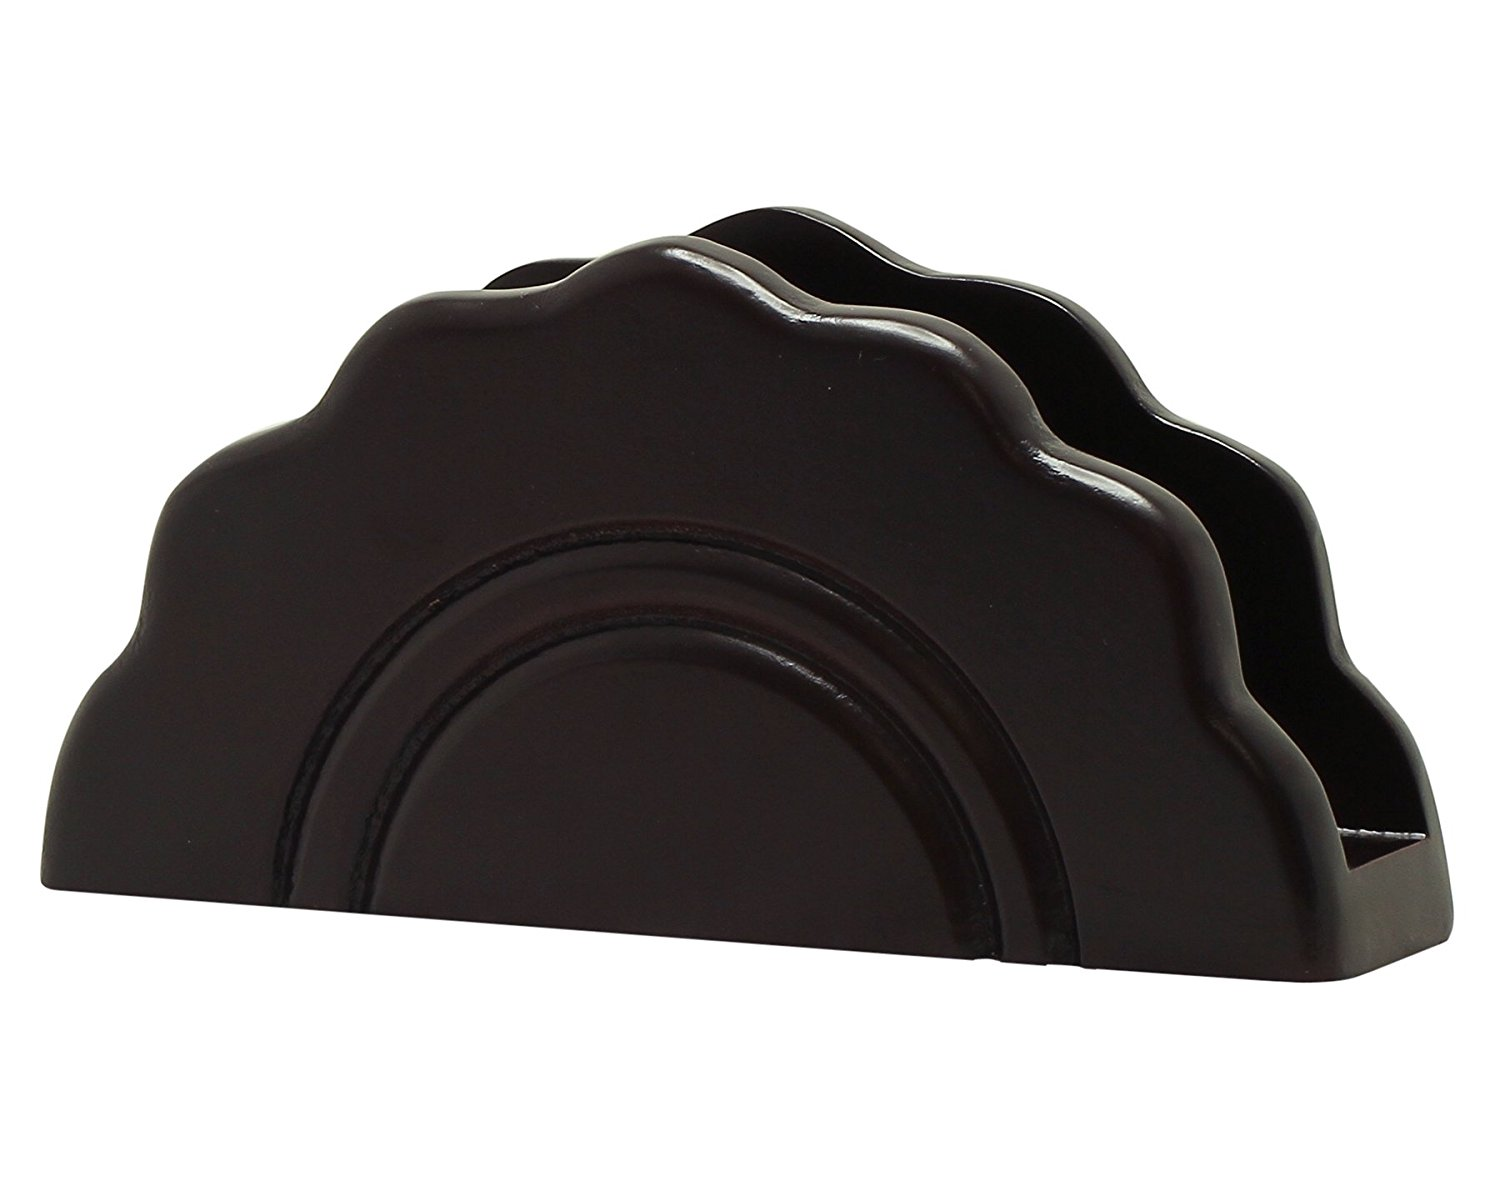 Clearance Sale Items - Wooden Black Napkin Holder Decorative Centerpiece Office